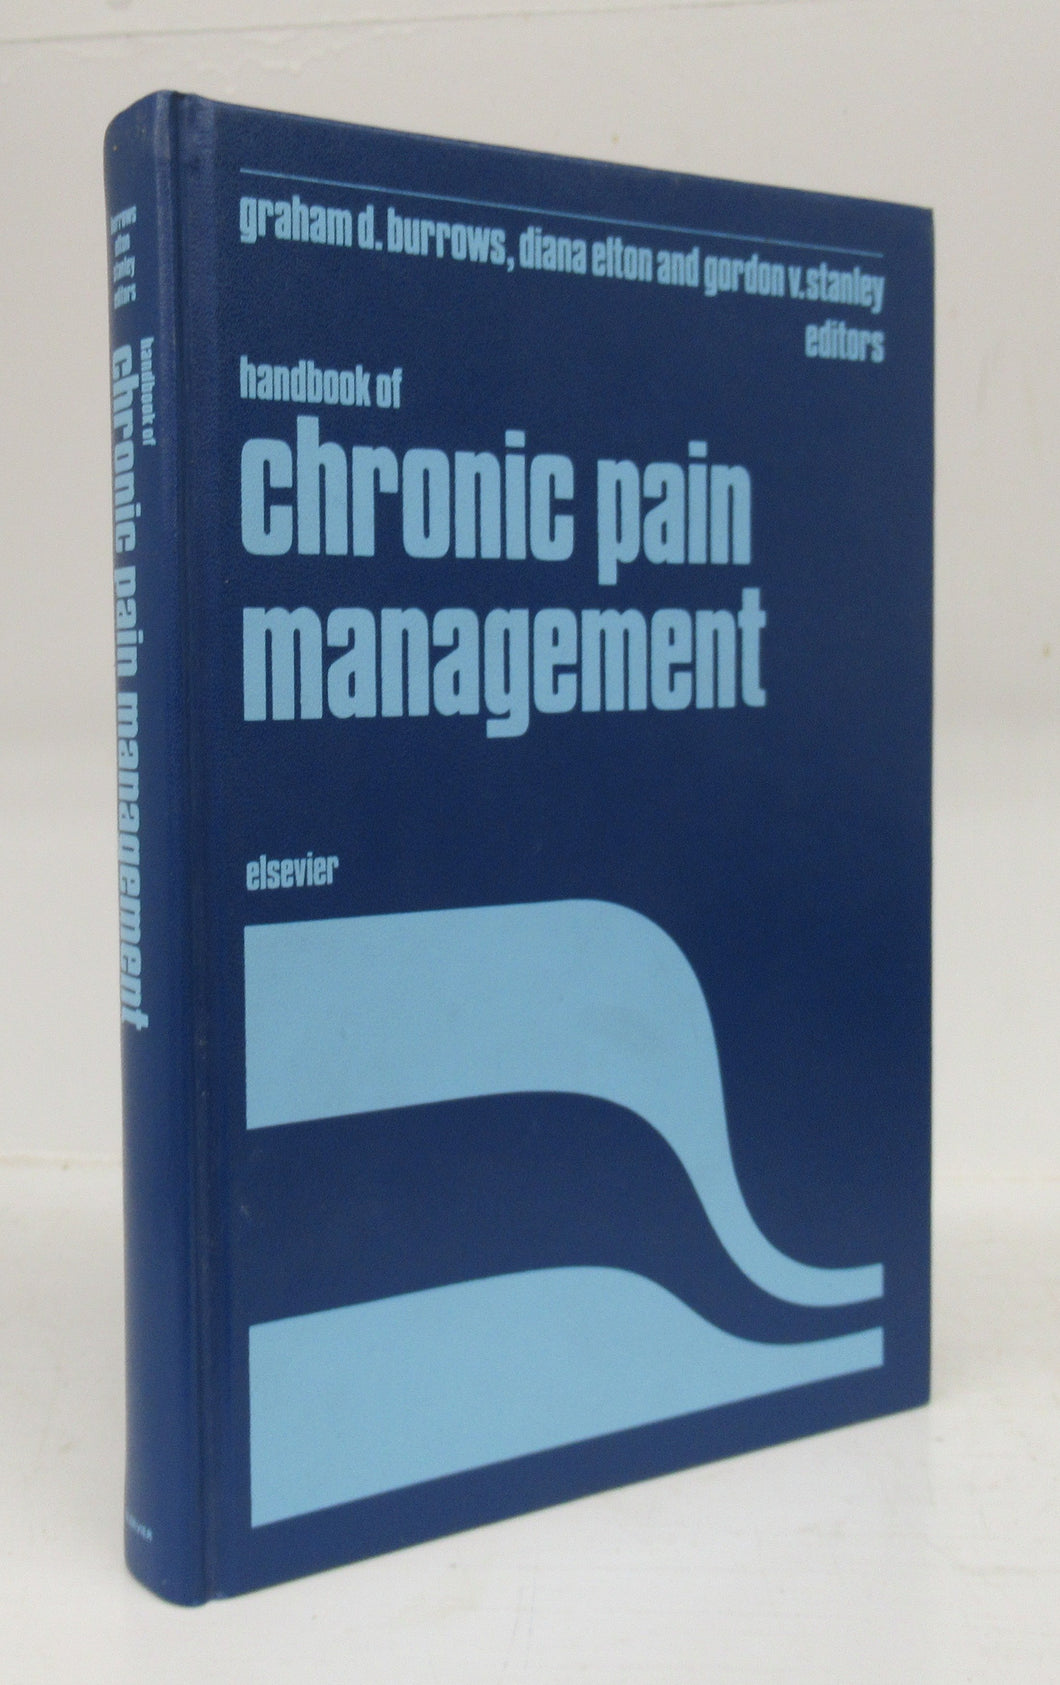 Handbook of chronic pain managment